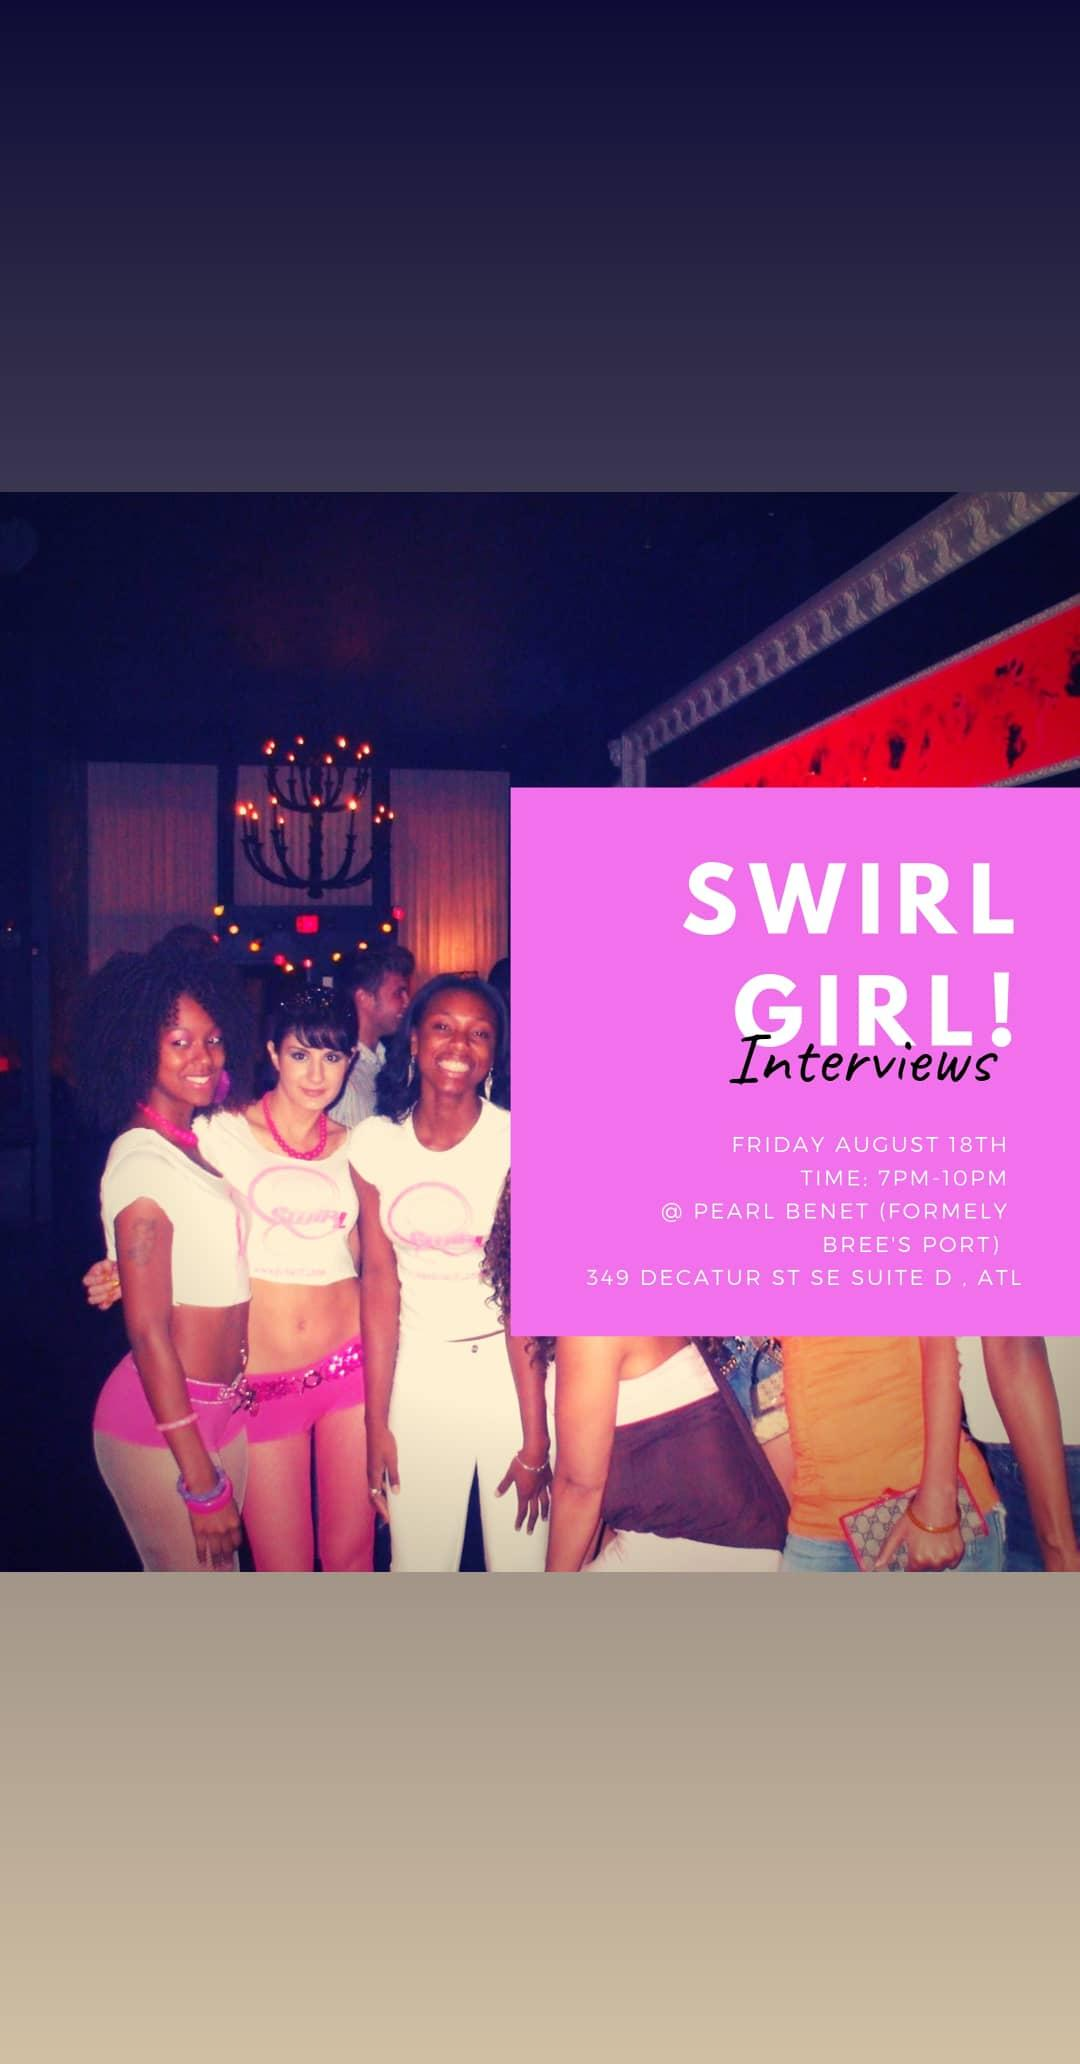 SWIRL GIRL Model Call & Powershot! We are looking fo empowering women to change the world! Party to save lives! Register now! (SWIRL)